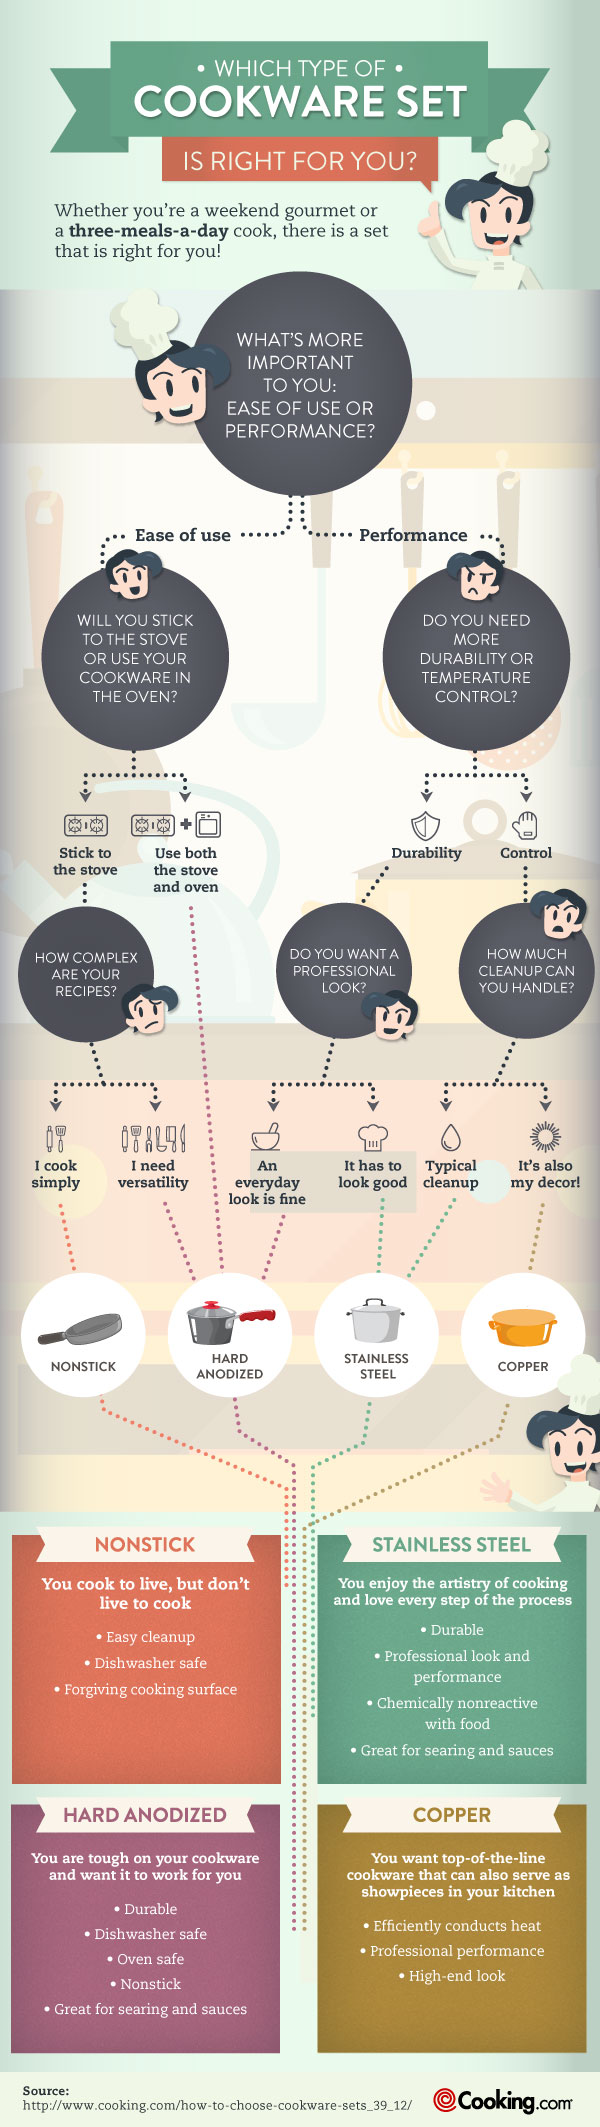 How to Choose Cookware Sets